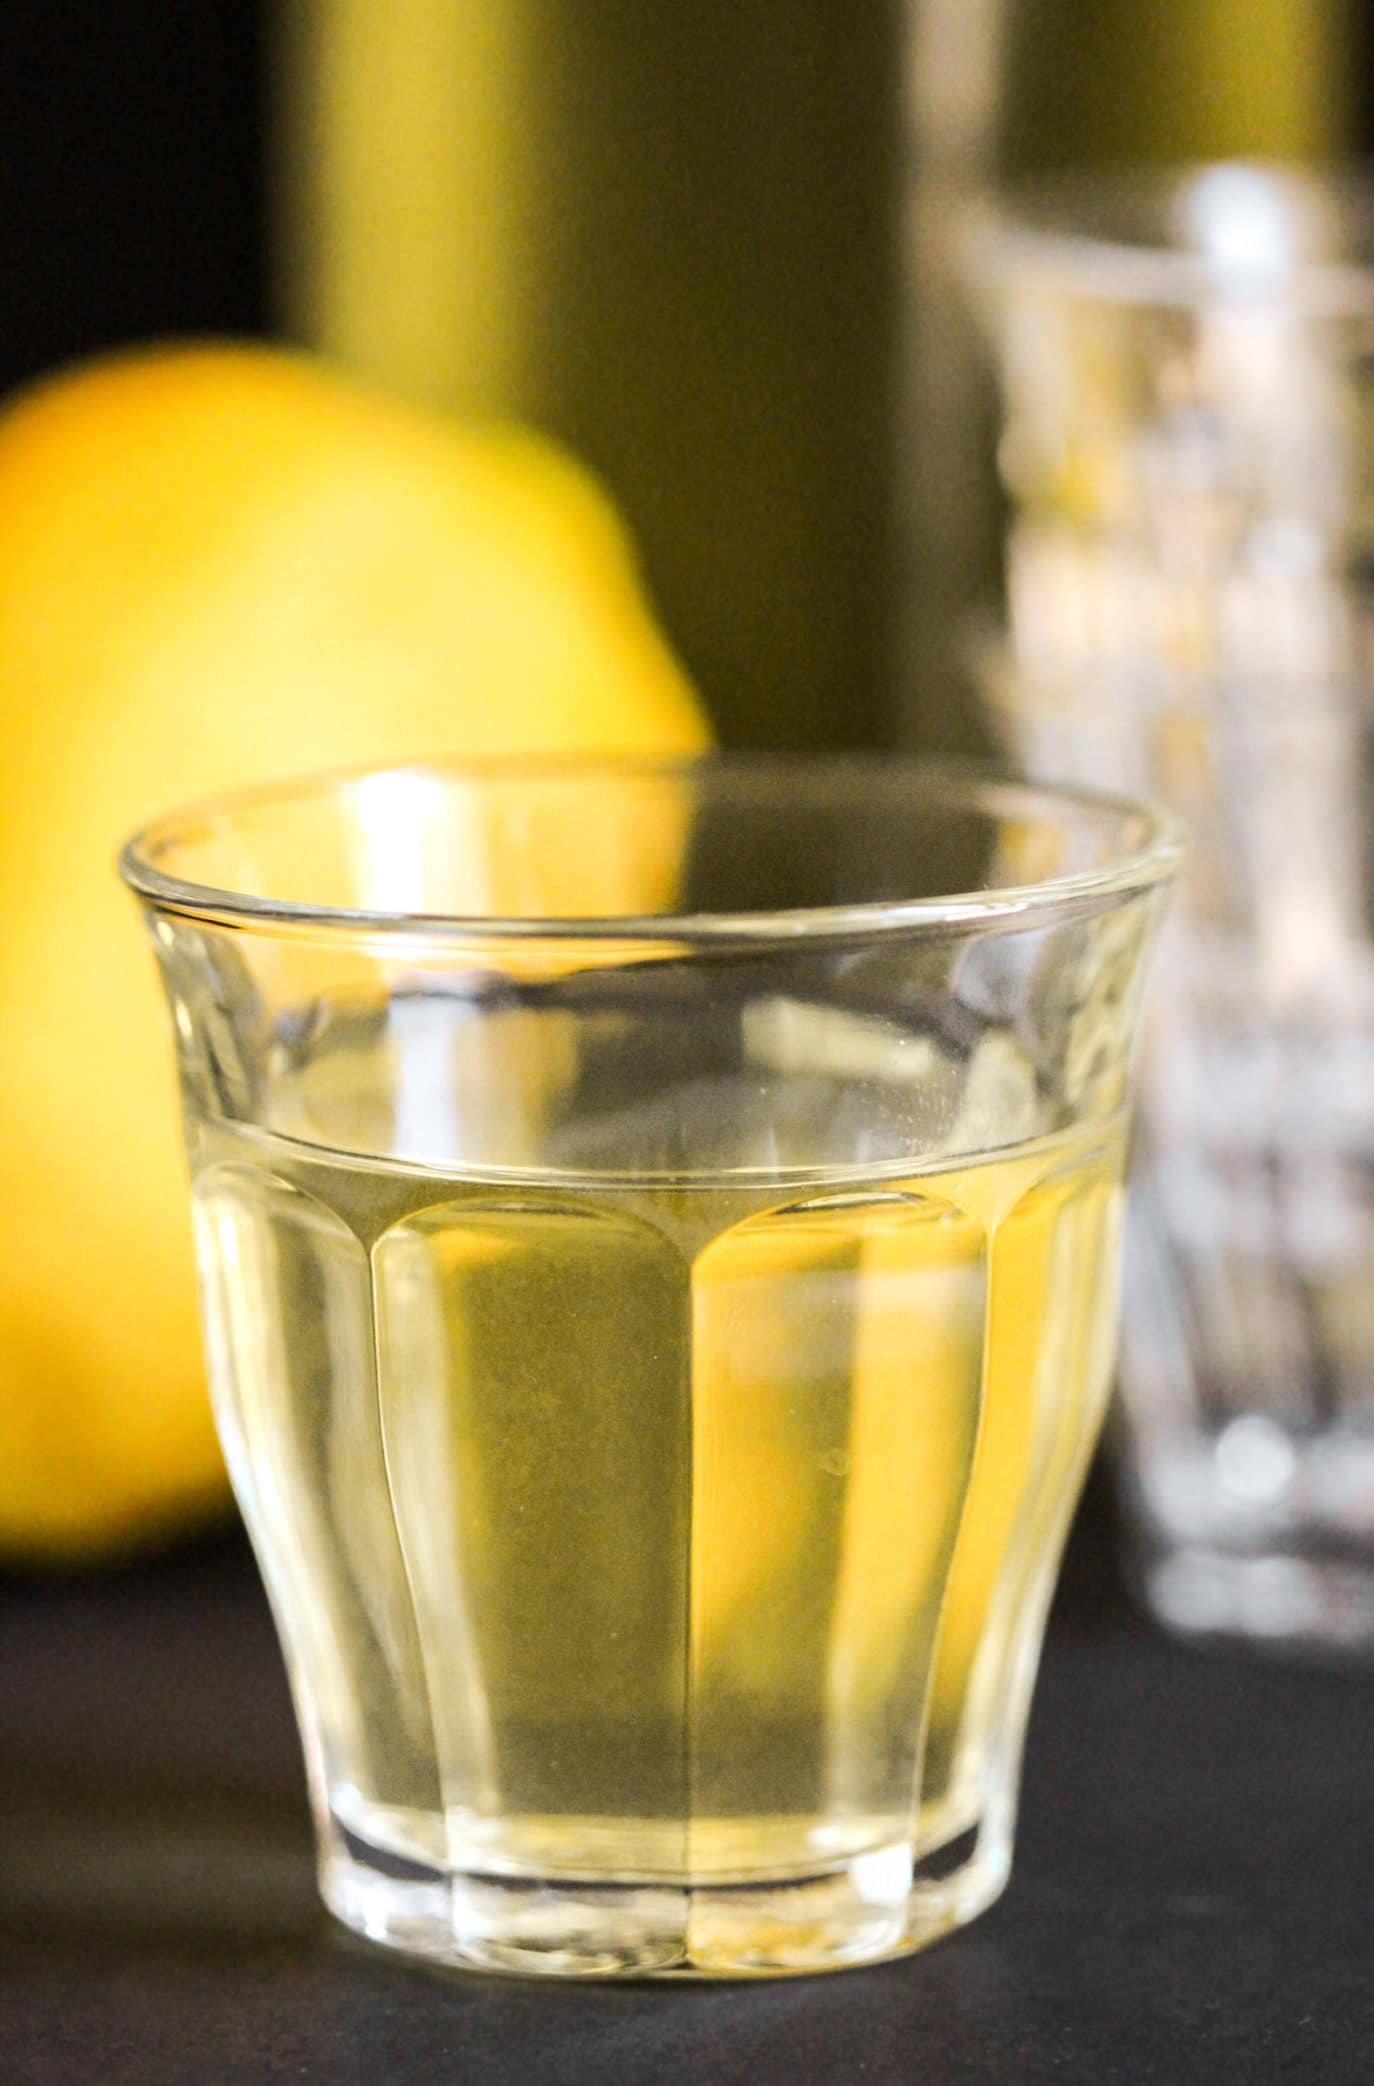 This Healthier Homemade Limoncello recipe is all natural (no artificial food coloring added), low calorie, refined sugar free, gluten free, and vegan, but you'd never know it! Healthy Dessert Recipes at Desserts with Benefits